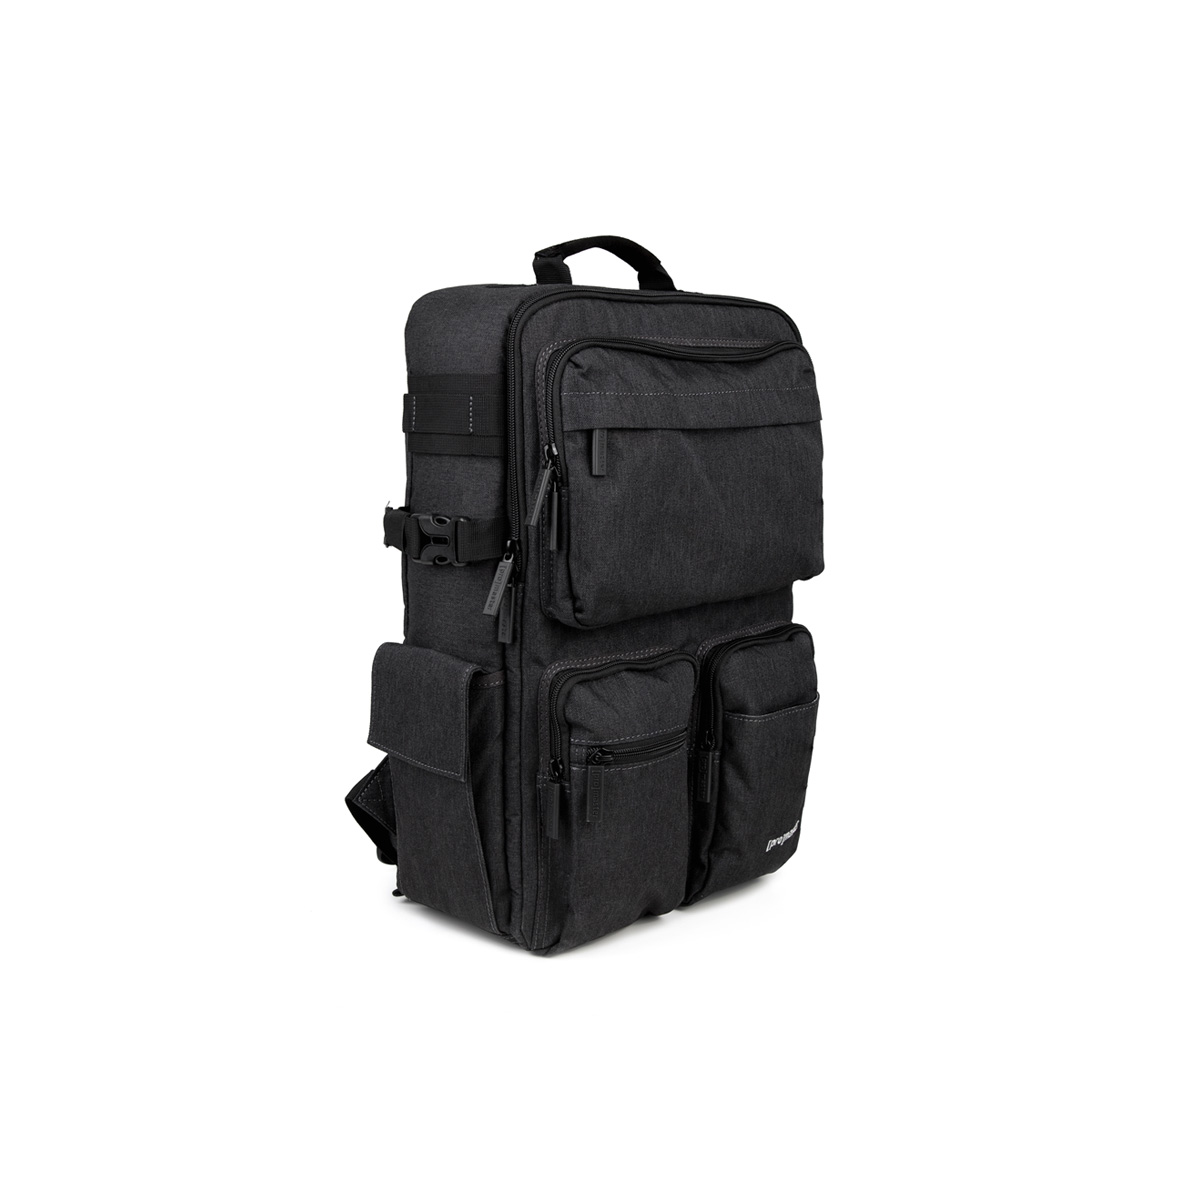 2791f95401 Promaster Cityscape 71 Backpack (Charcoal Grey) - The Camera Exchange